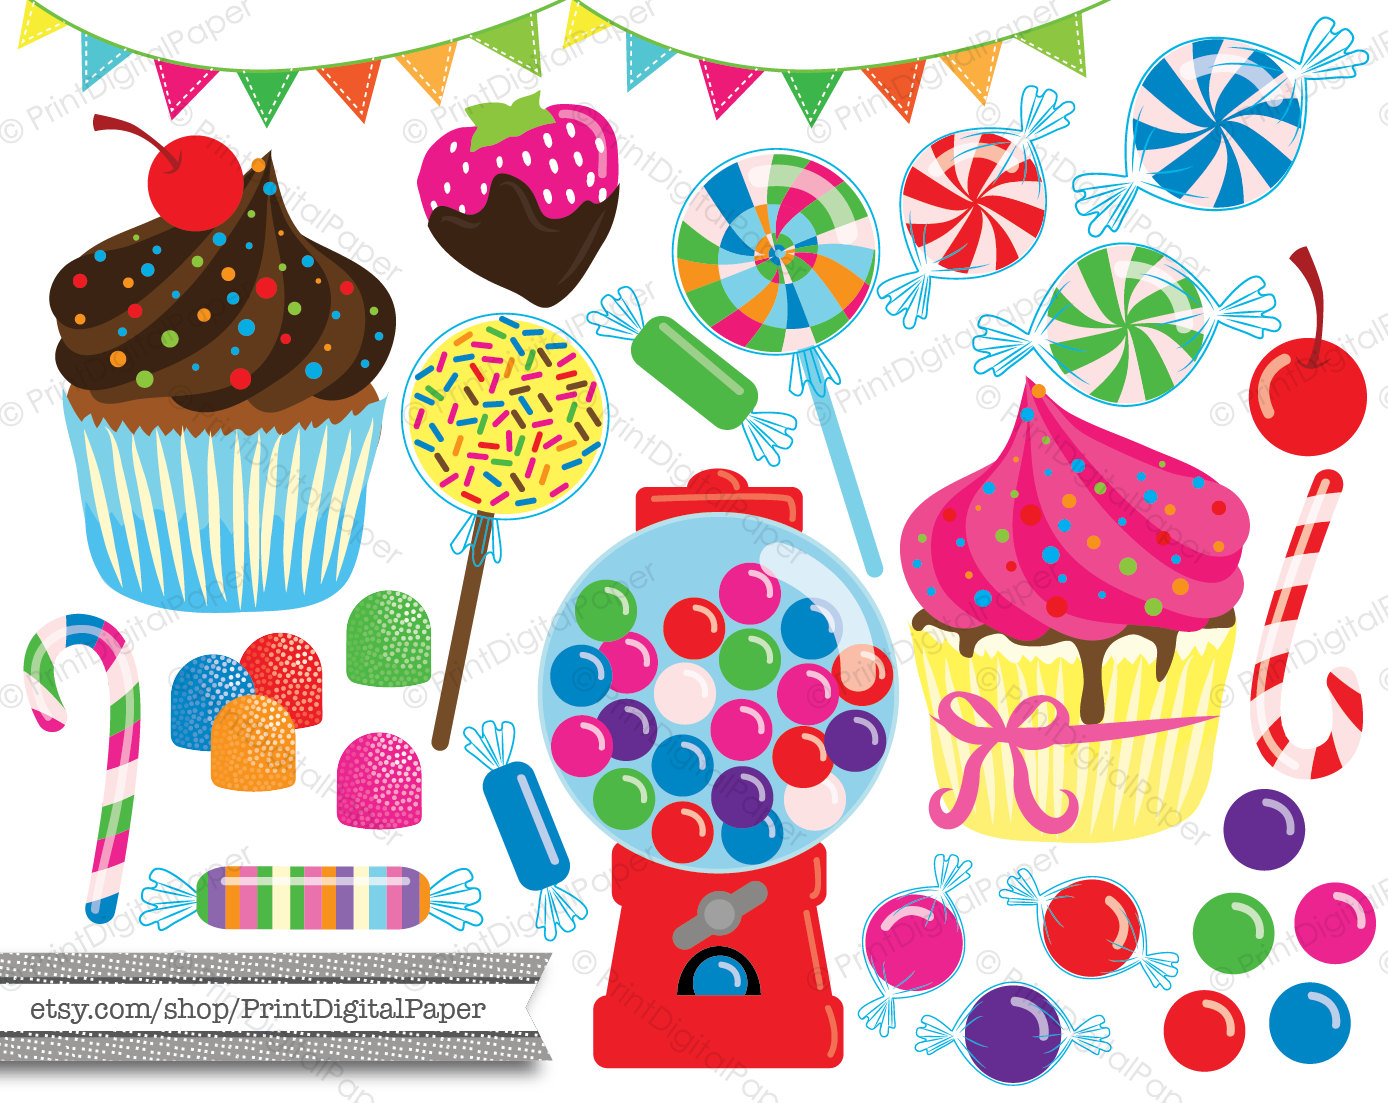 Candy Cane clipart lollipops Strawberry Candy cane Use